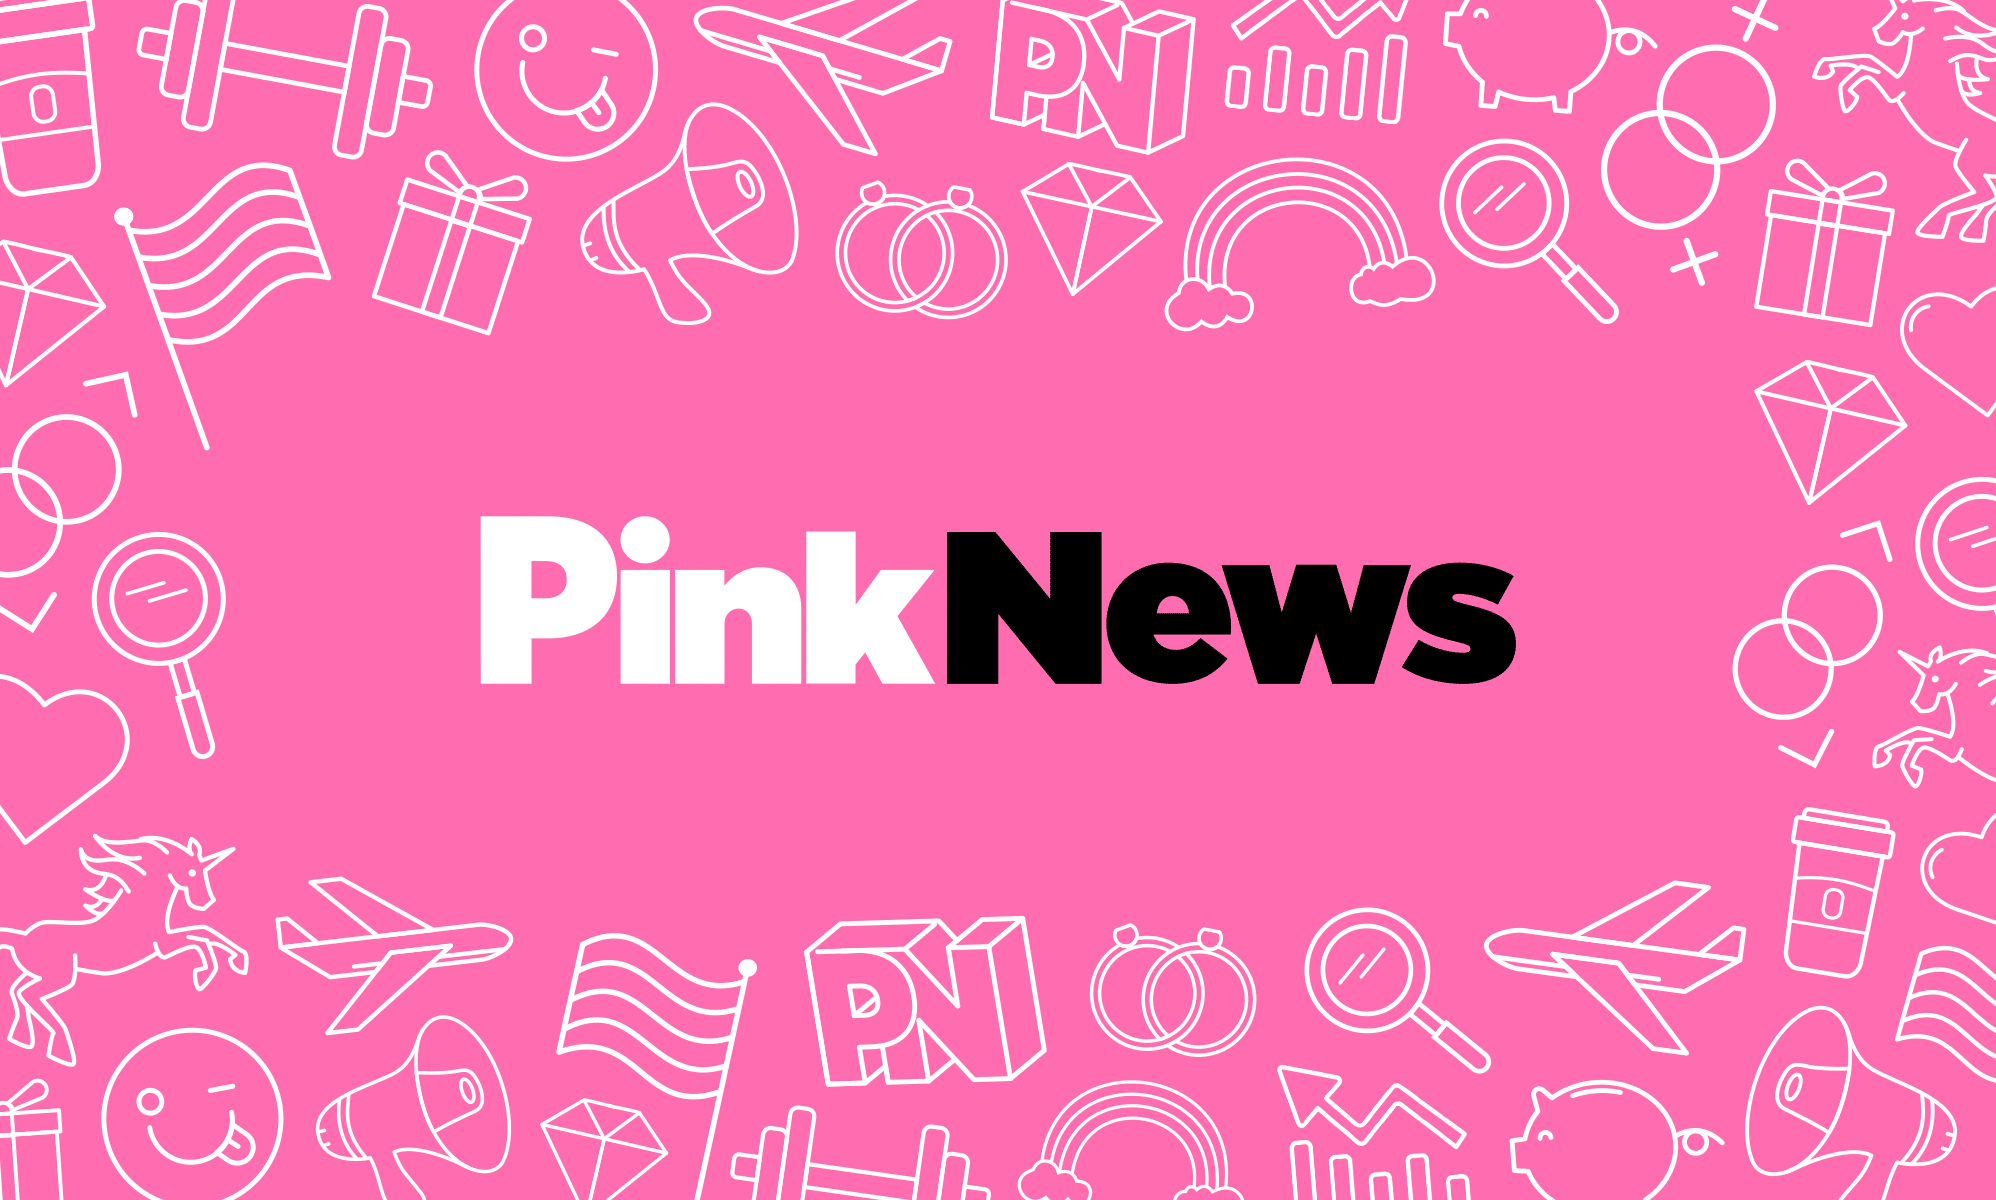 How the News of the World threatened PinkNews after Ashley Cole expose